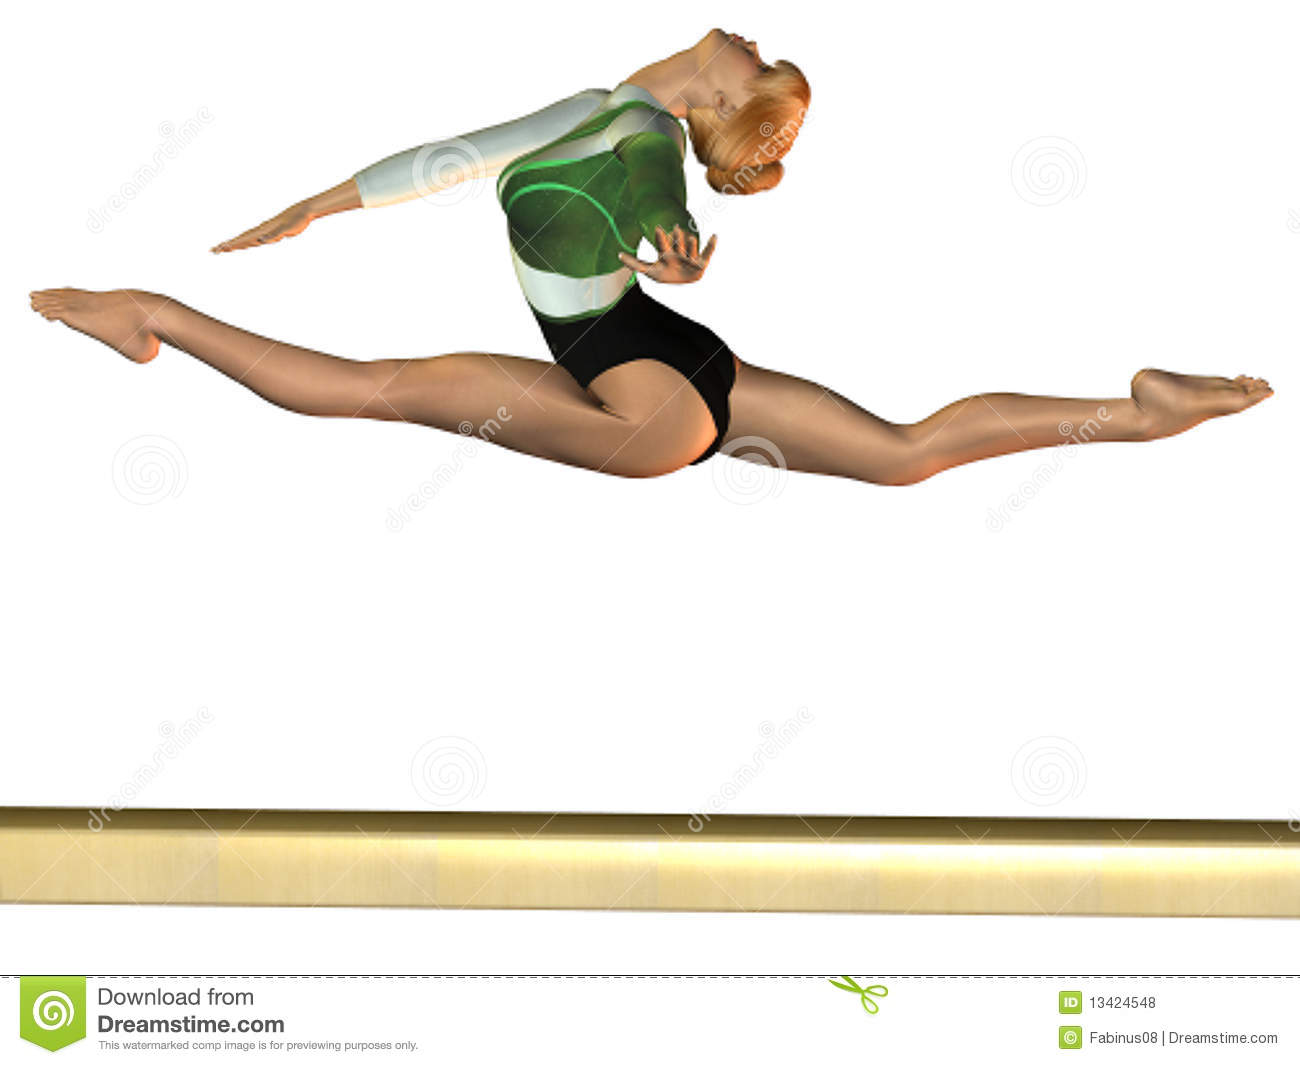 Viewing Gallery For - Gymnastics Clipart On Beam